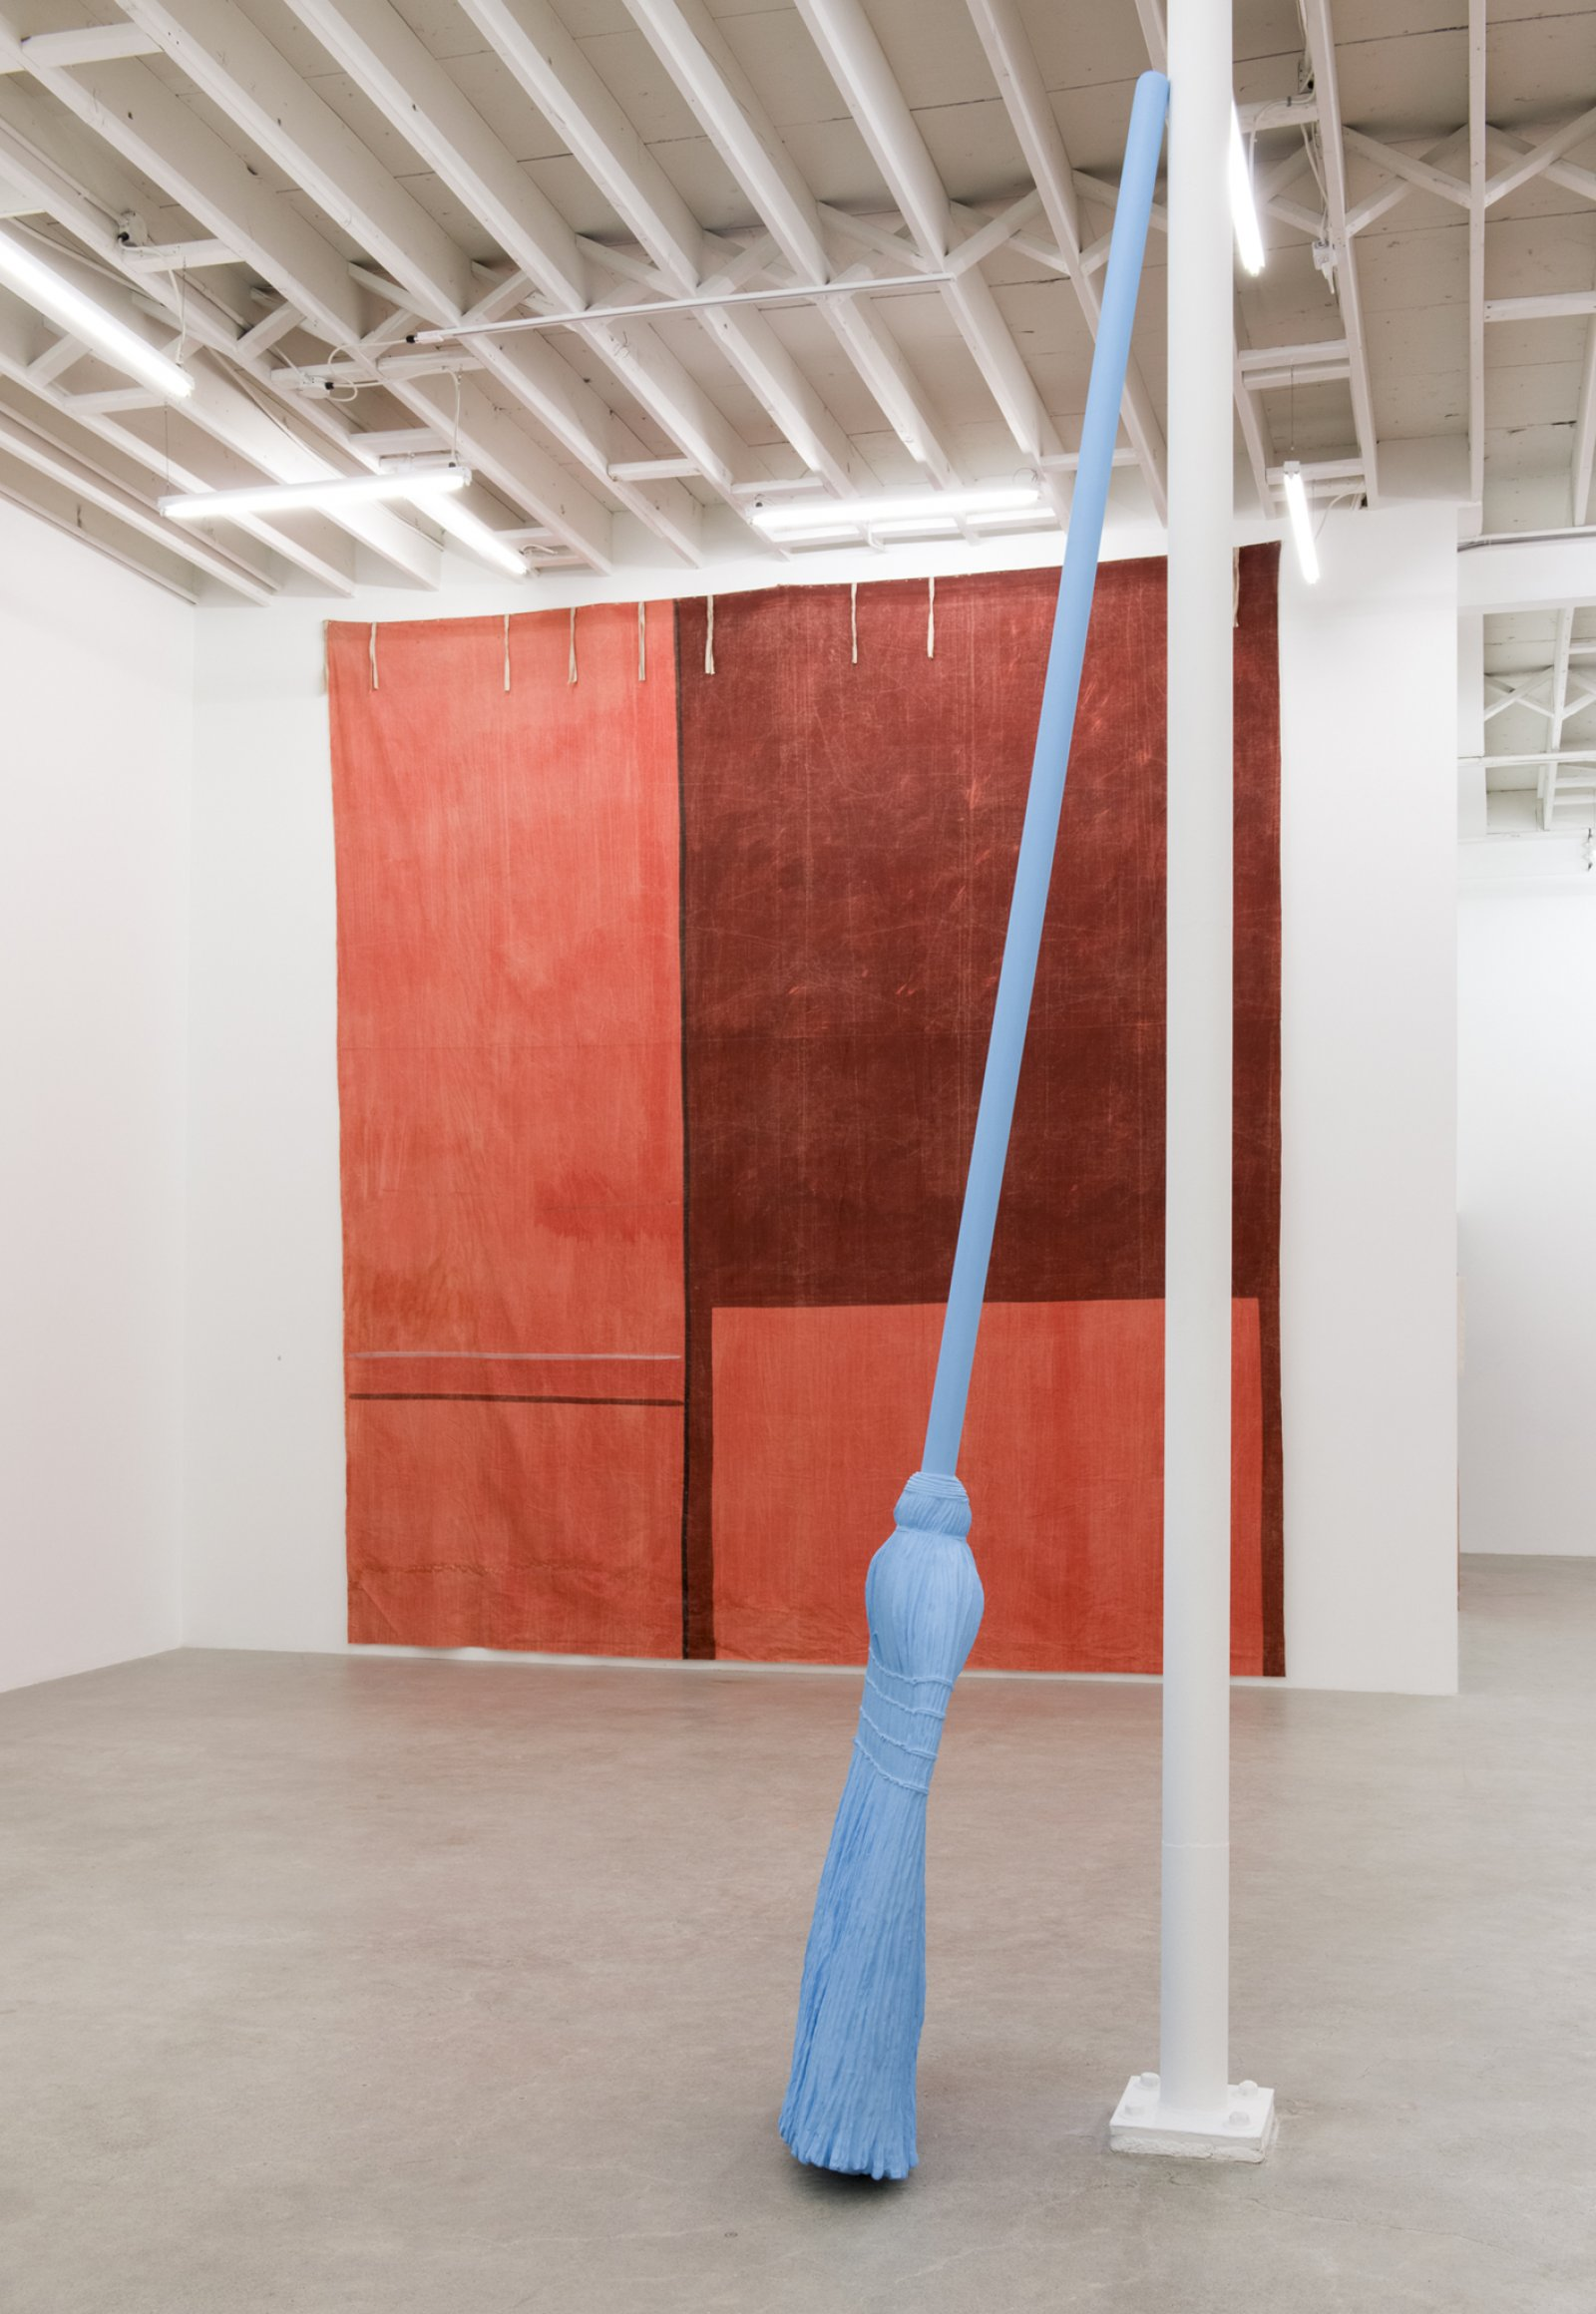 Geoffrey Farmer, ATTUNED FULL MOON BROOM WITH TALL WALL SCRAWL, 2017, theatre backdrop (1939), foam, plastic, paint, backdrop: 183 x 163 in. (464 x 414 cm), broom: 148 x 26 x 9 in. (375 x 65 x 23 cm)